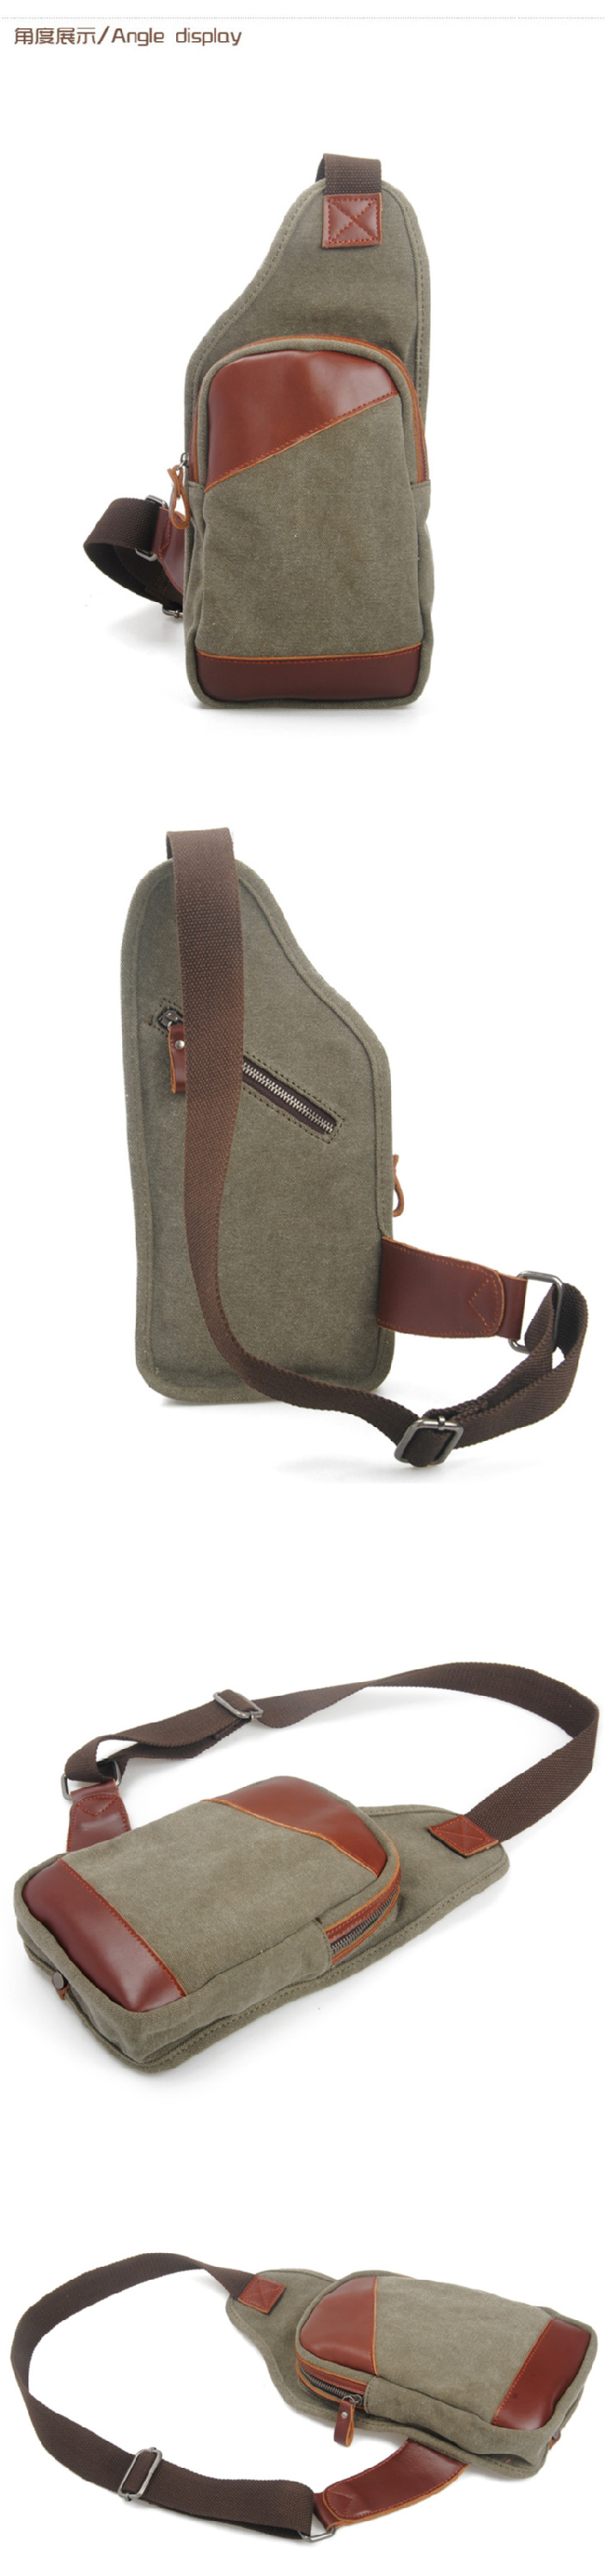 449c2c0eb8c5 2018 Latest Fashion Military Army Green Canvas Bicycle Backpack Single  Shoulder Sling Bag Satchels